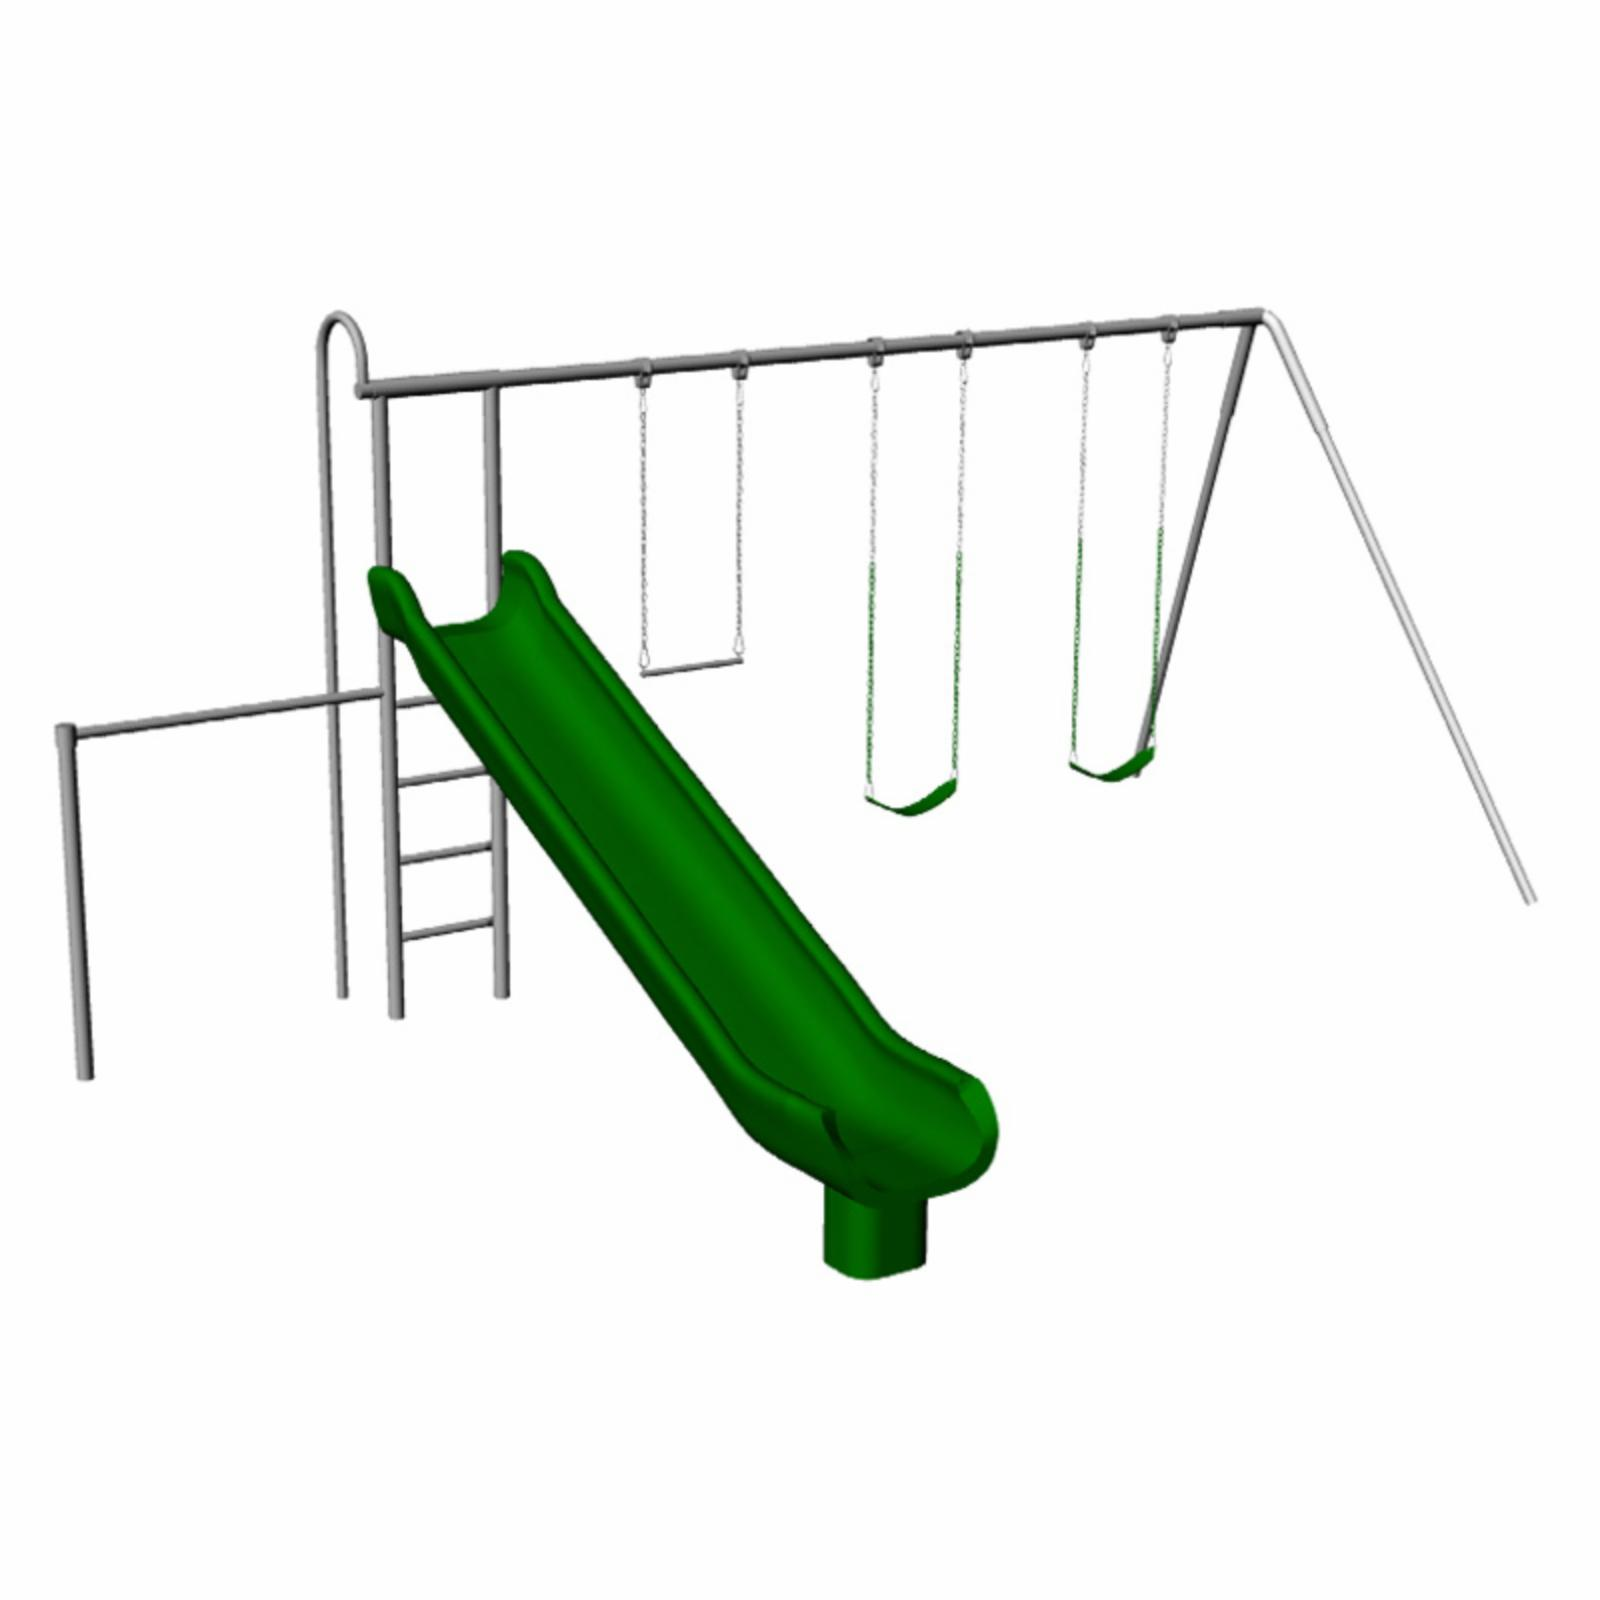 Component Playgrounds Natalie Metal Swing Set - MT40